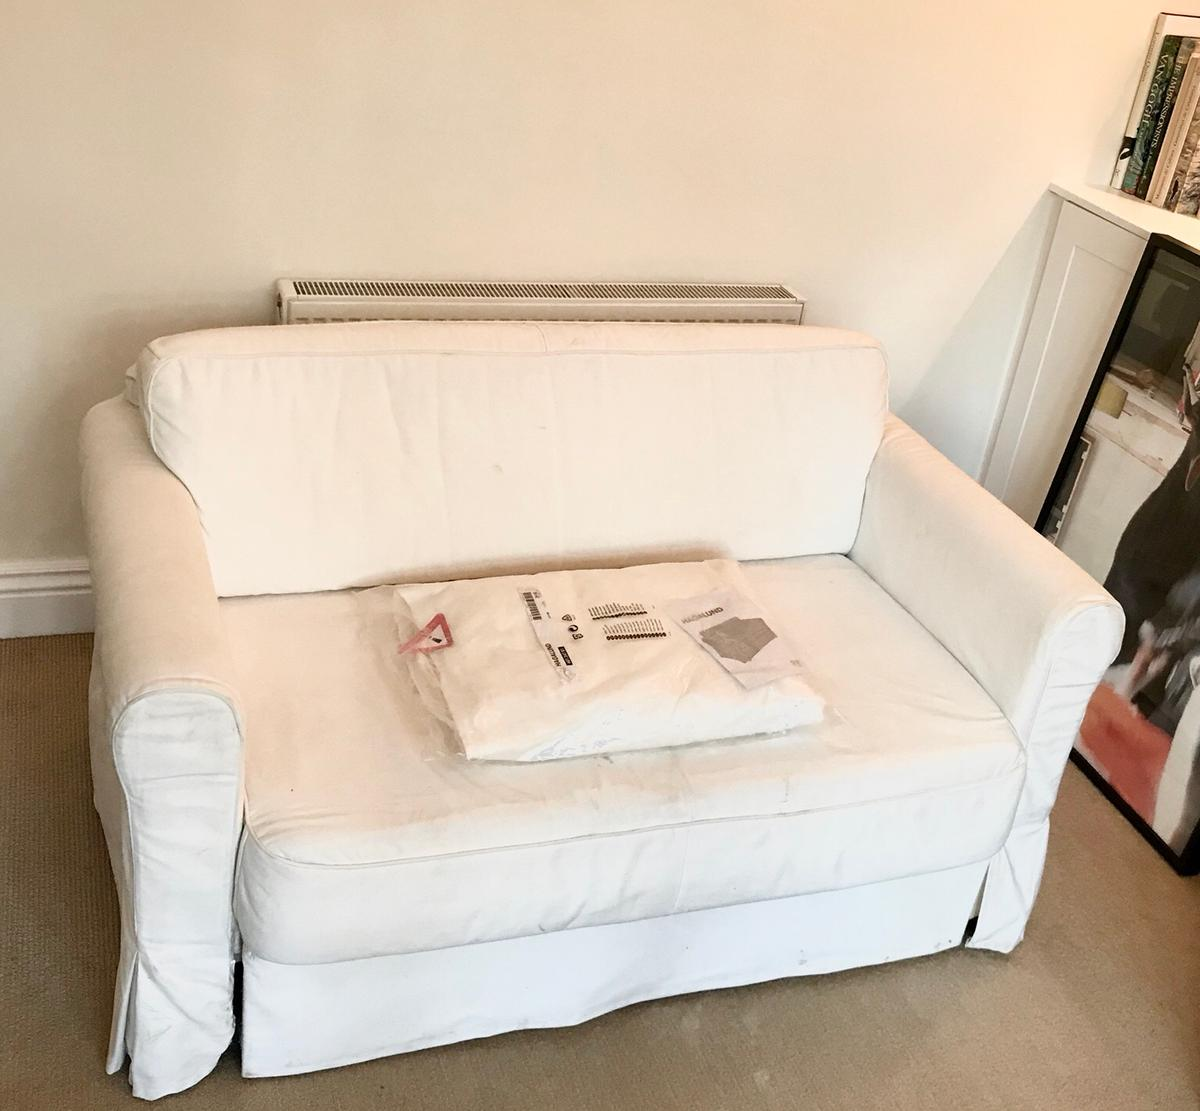 Astonishing Ikea Hagalund Sofa Bed With New Covers In Sw20 London Bralicious Painted Fabric Chair Ideas Braliciousco